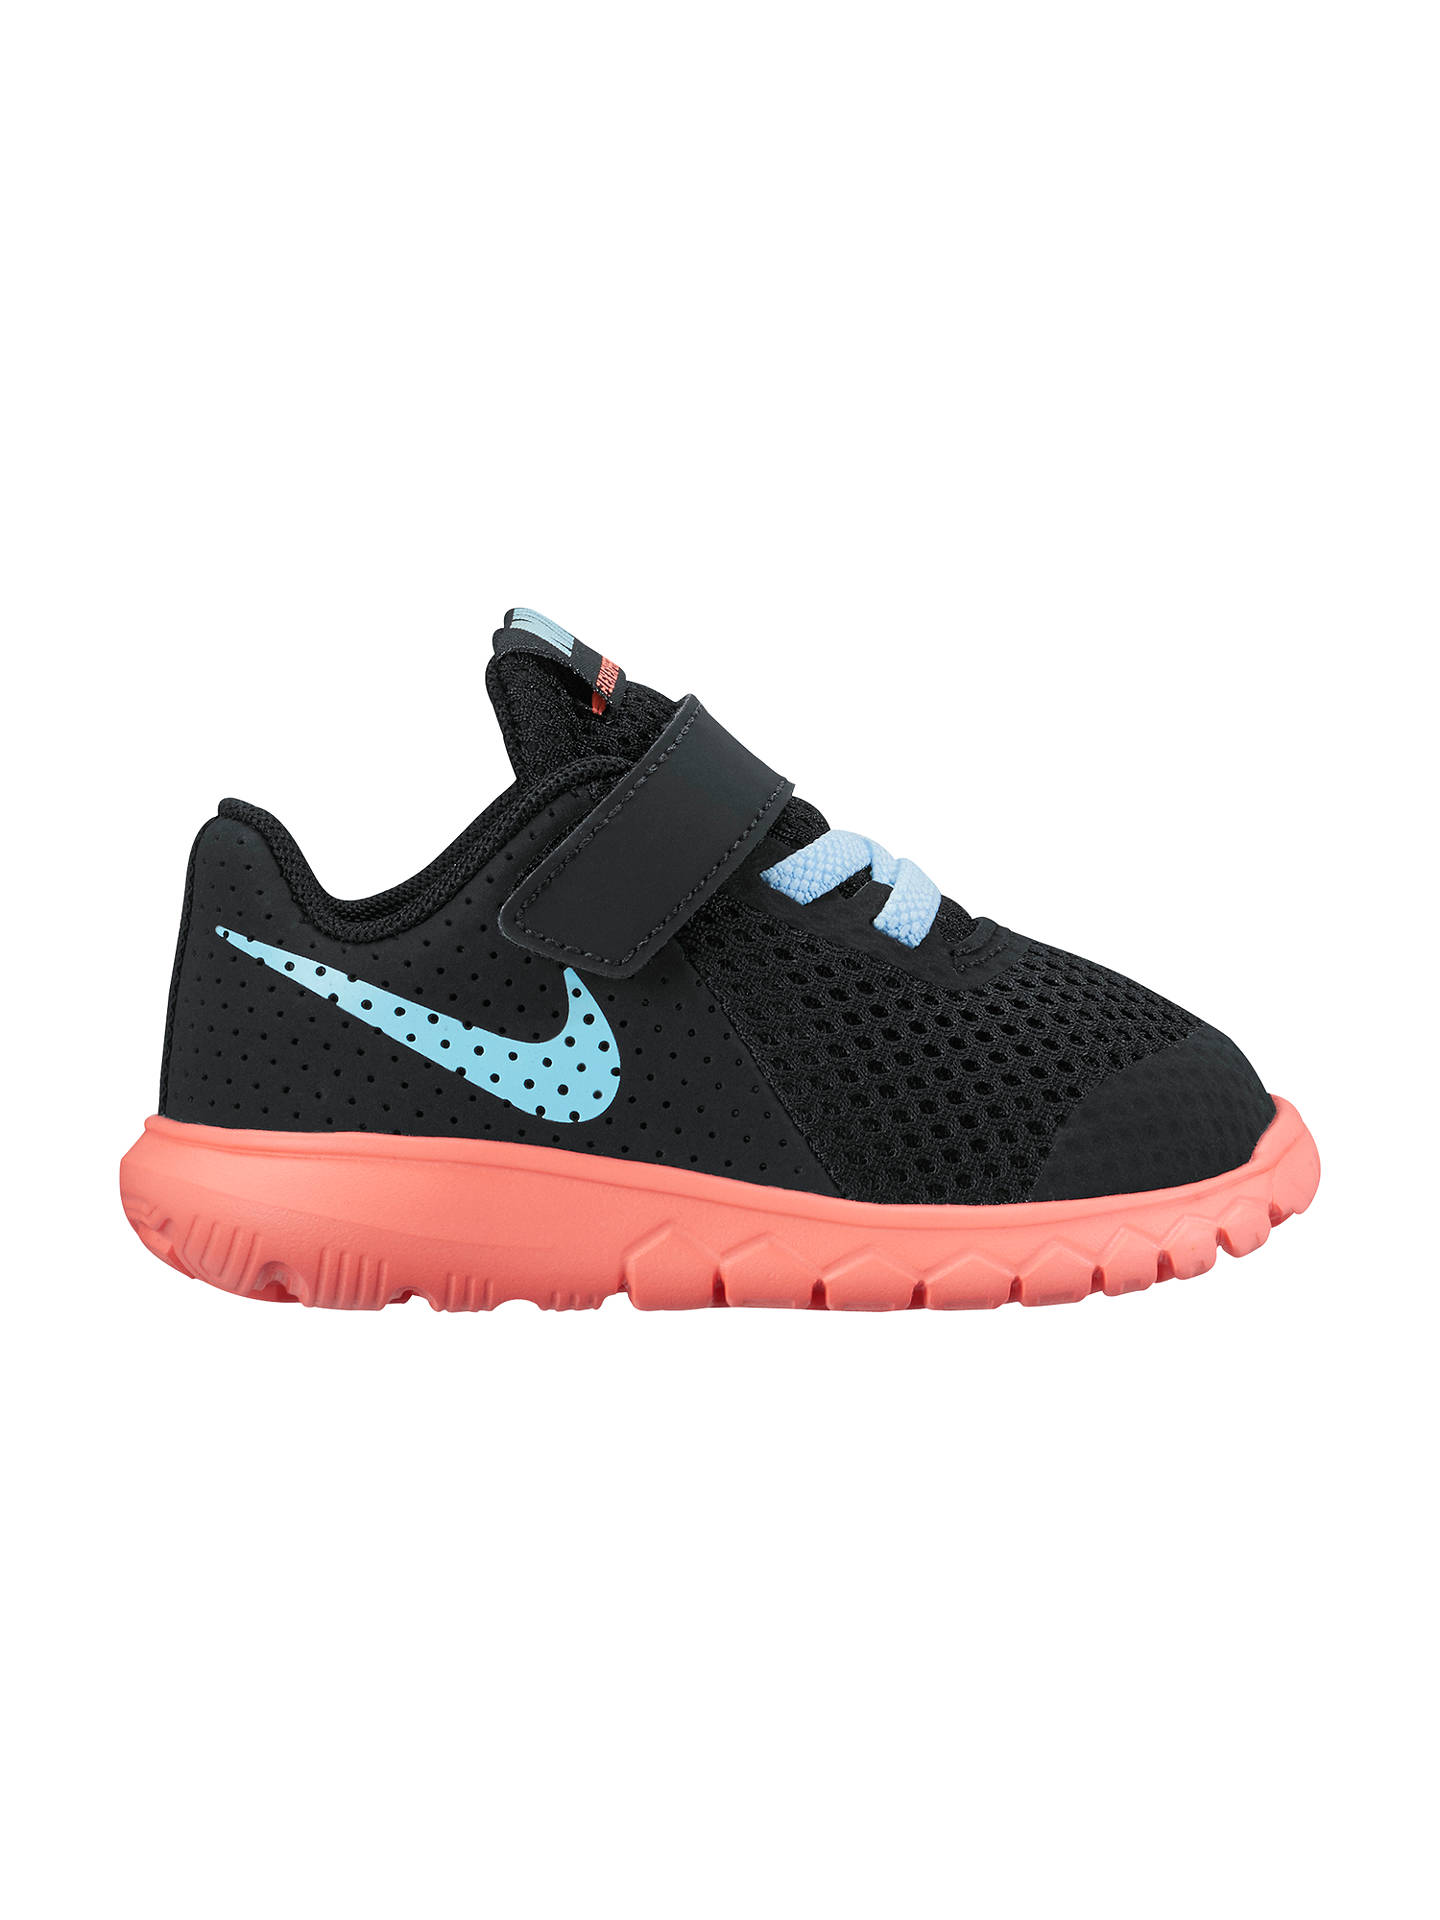 e864741ffd7f8 Buy Nike Toddler Flex Experience 5 Trainers